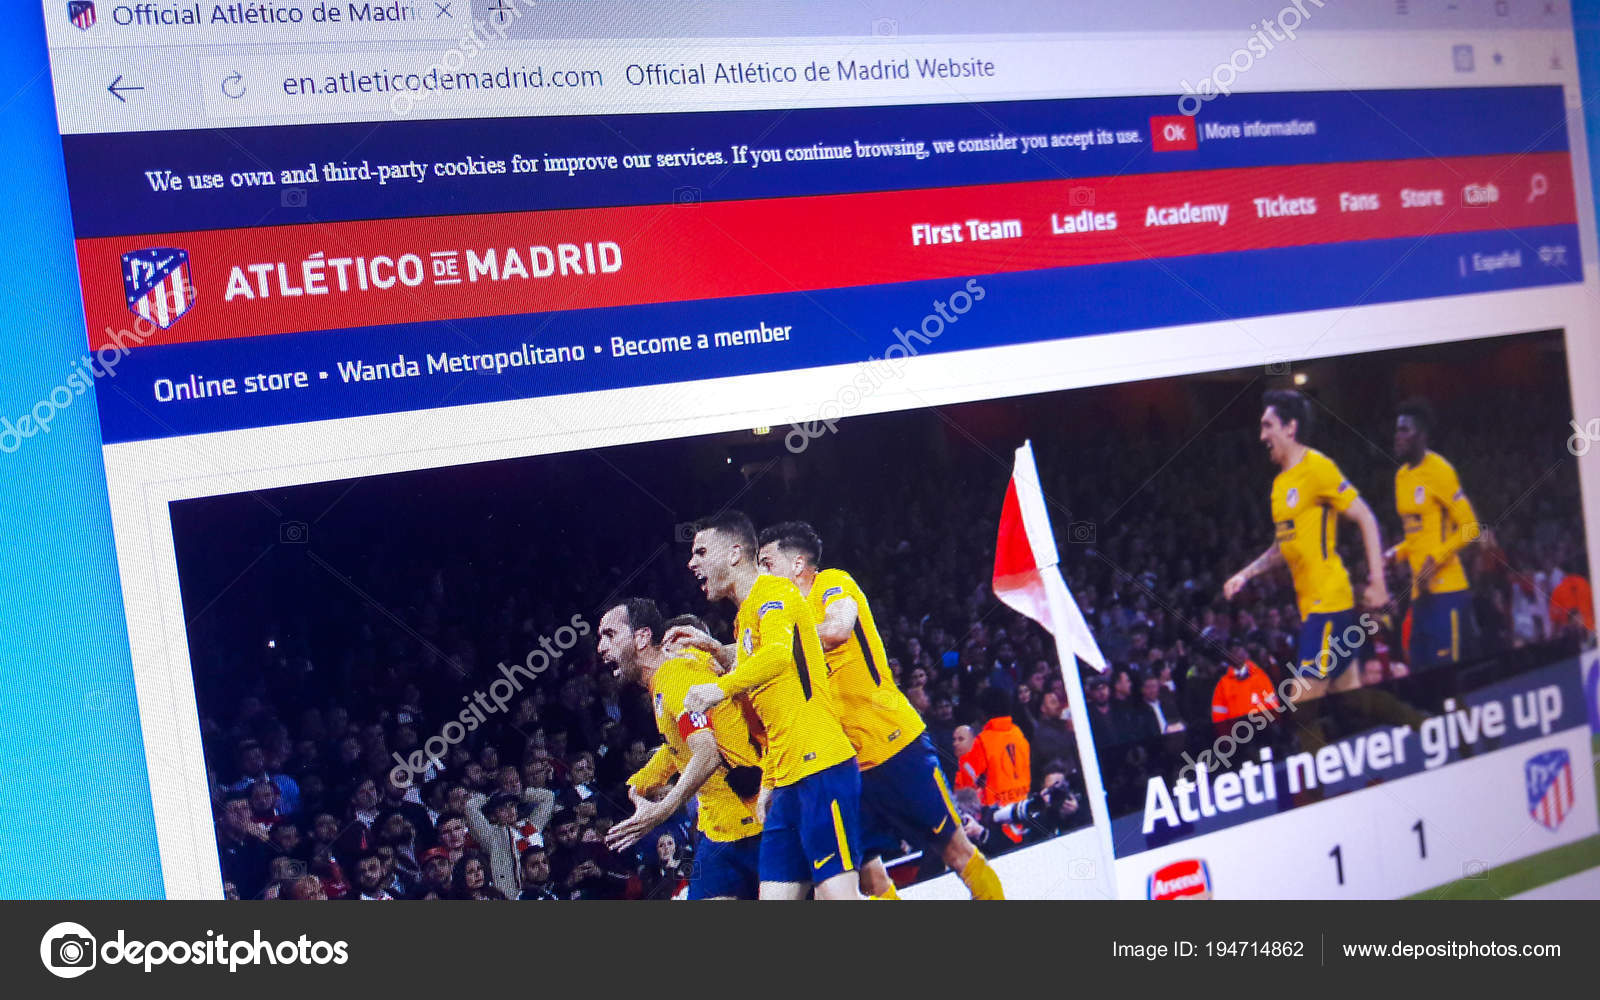 784f695c43f Minsk, Belarus - April 27, 2018: The homepage of the official website for Atletico  Madrid, a Spanish professional football club based in Madrid, ...